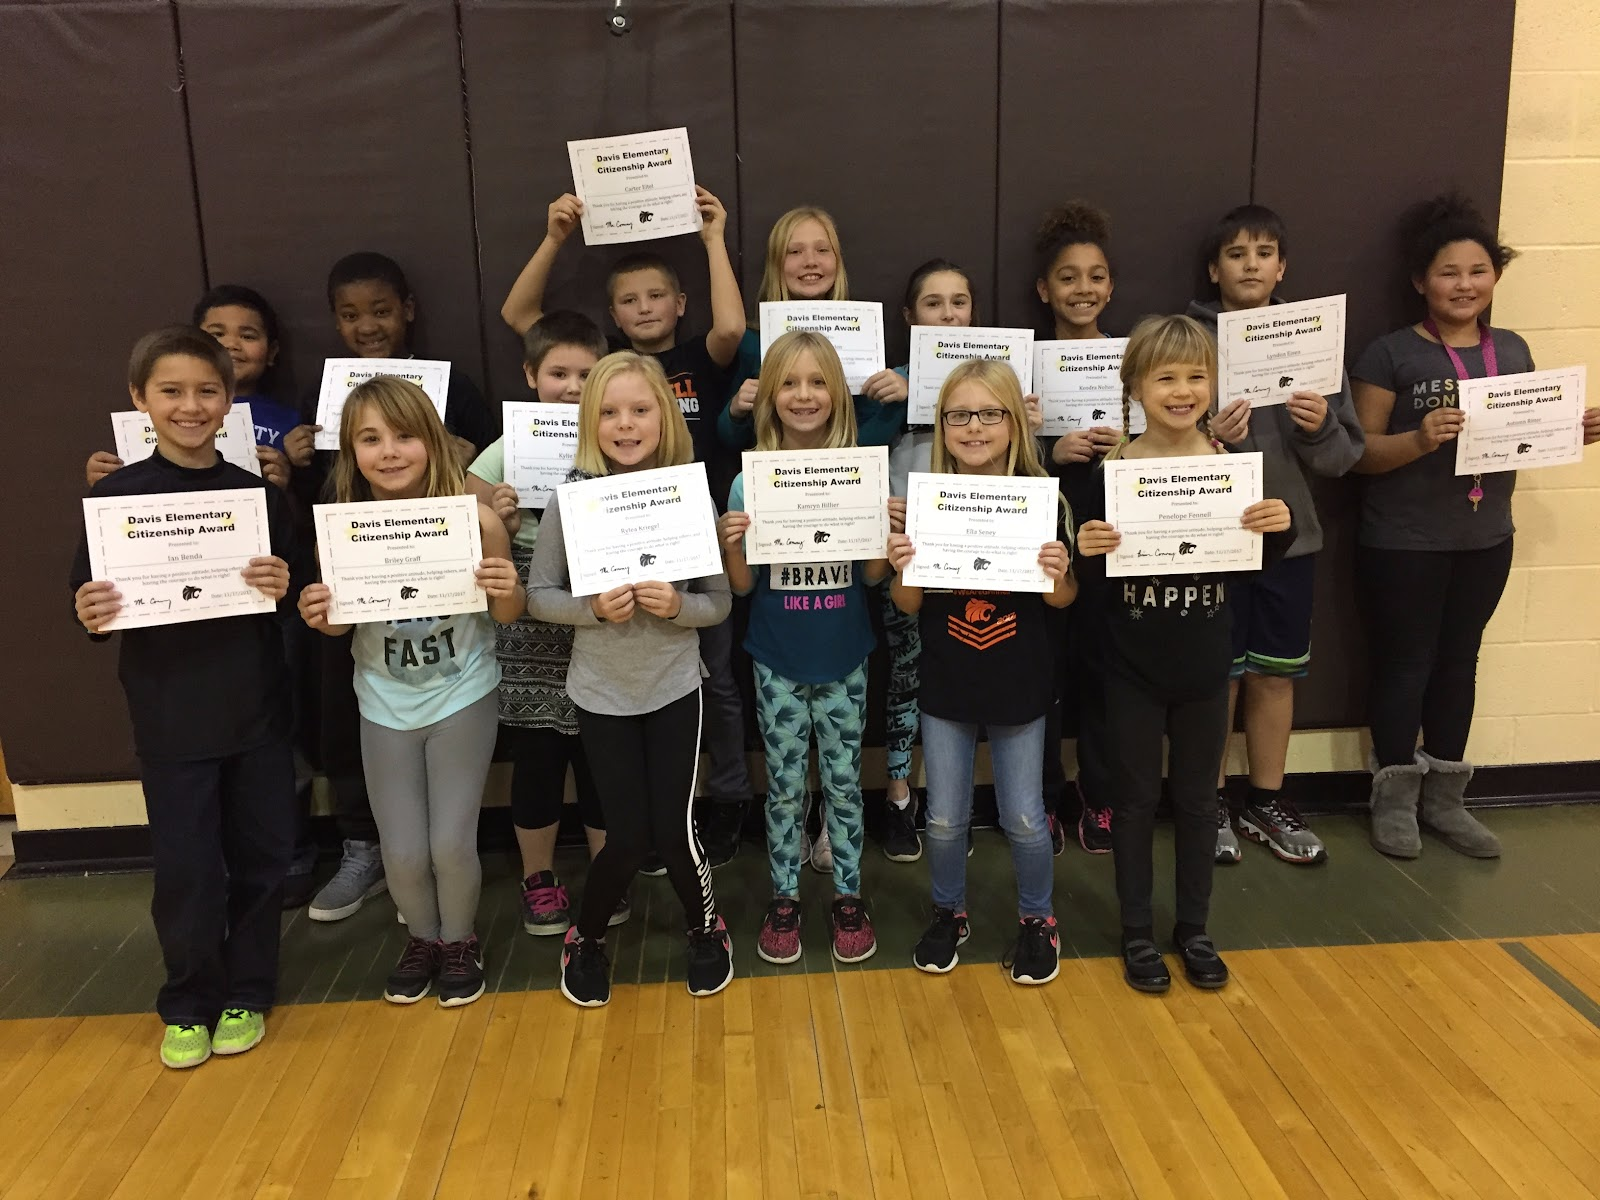 Students at Davis were given Character Awards for being great citizens